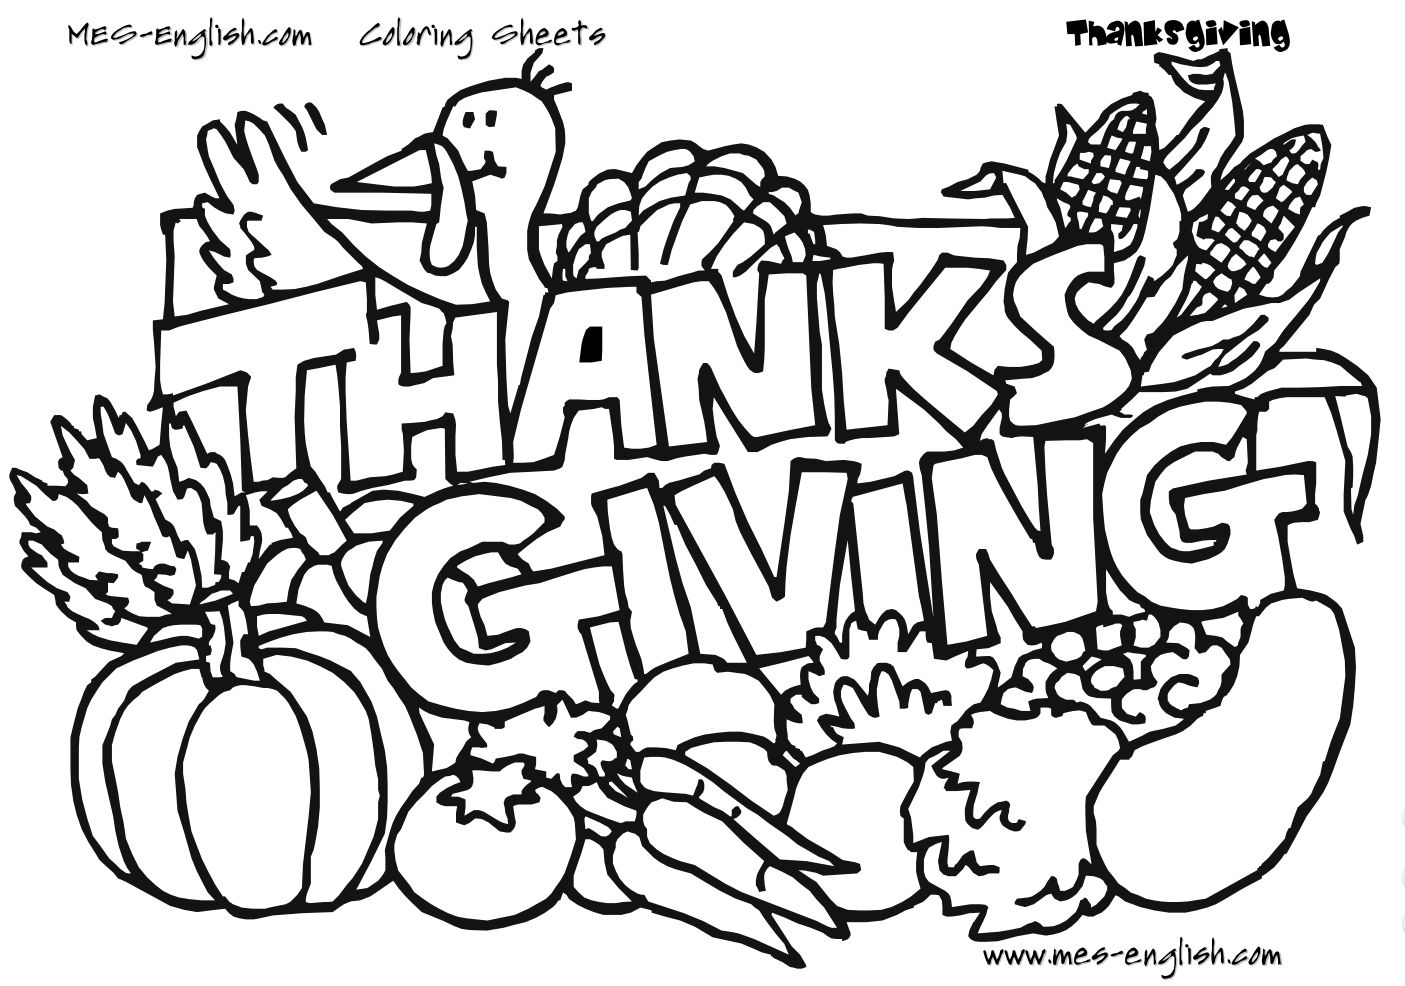 Free Printable Thanksgiving Coloring Pages For Adults At